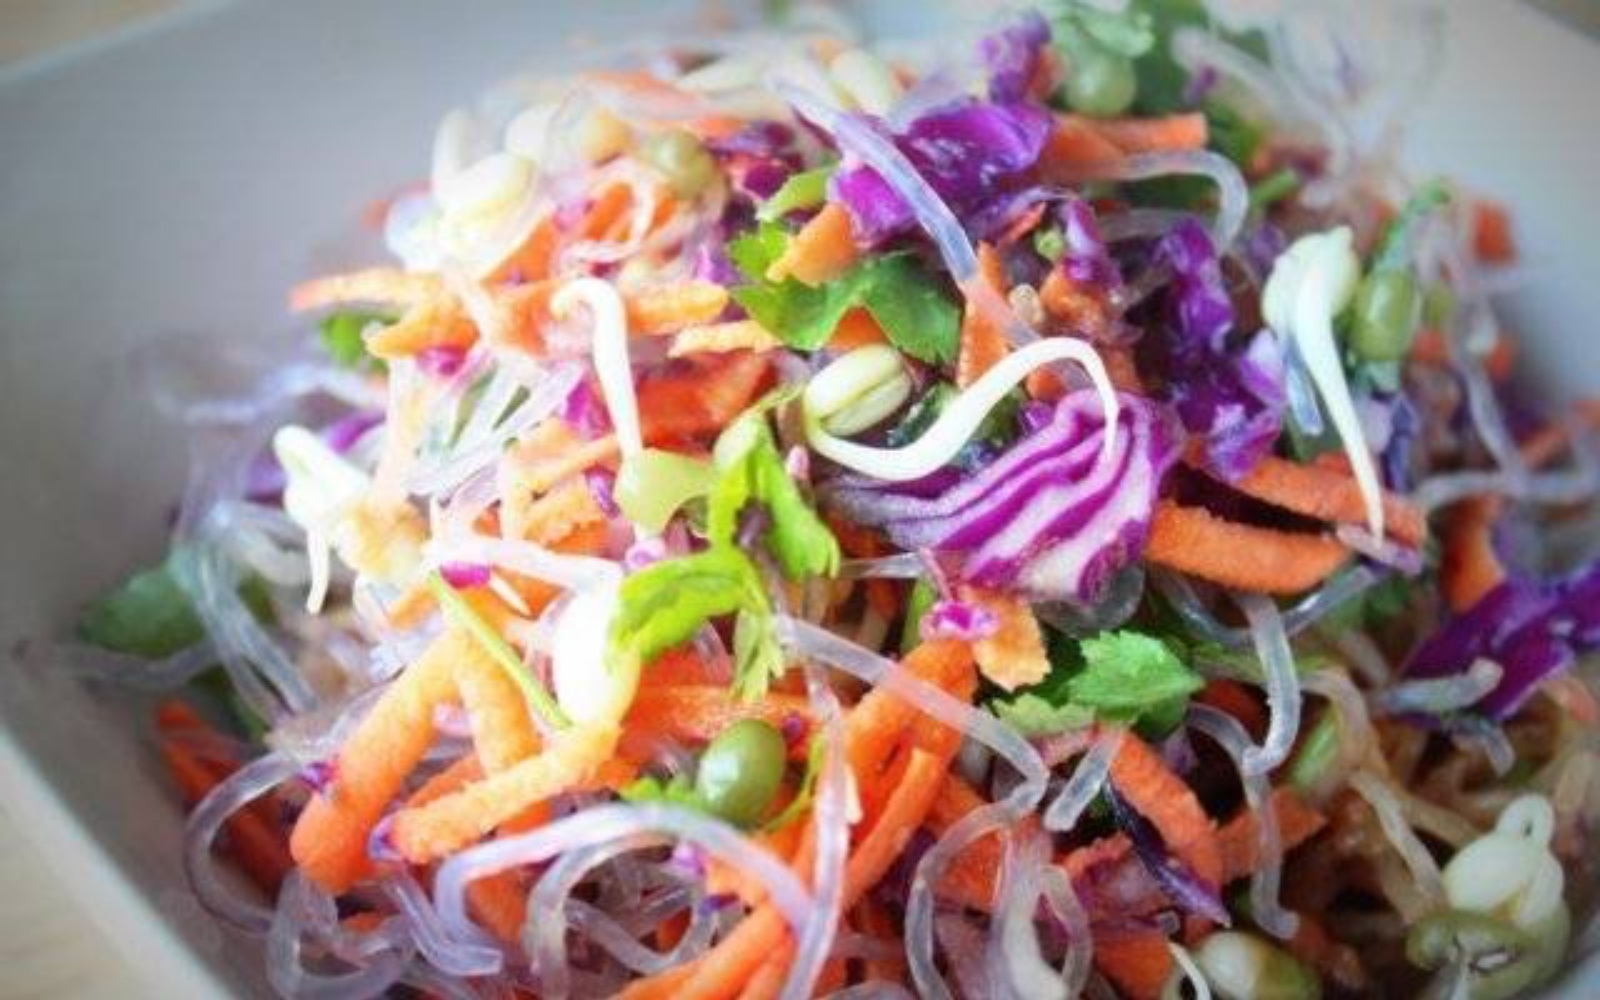 Sweet Potato, Red Cabbage and Kelp Noodles with Miso Dressing